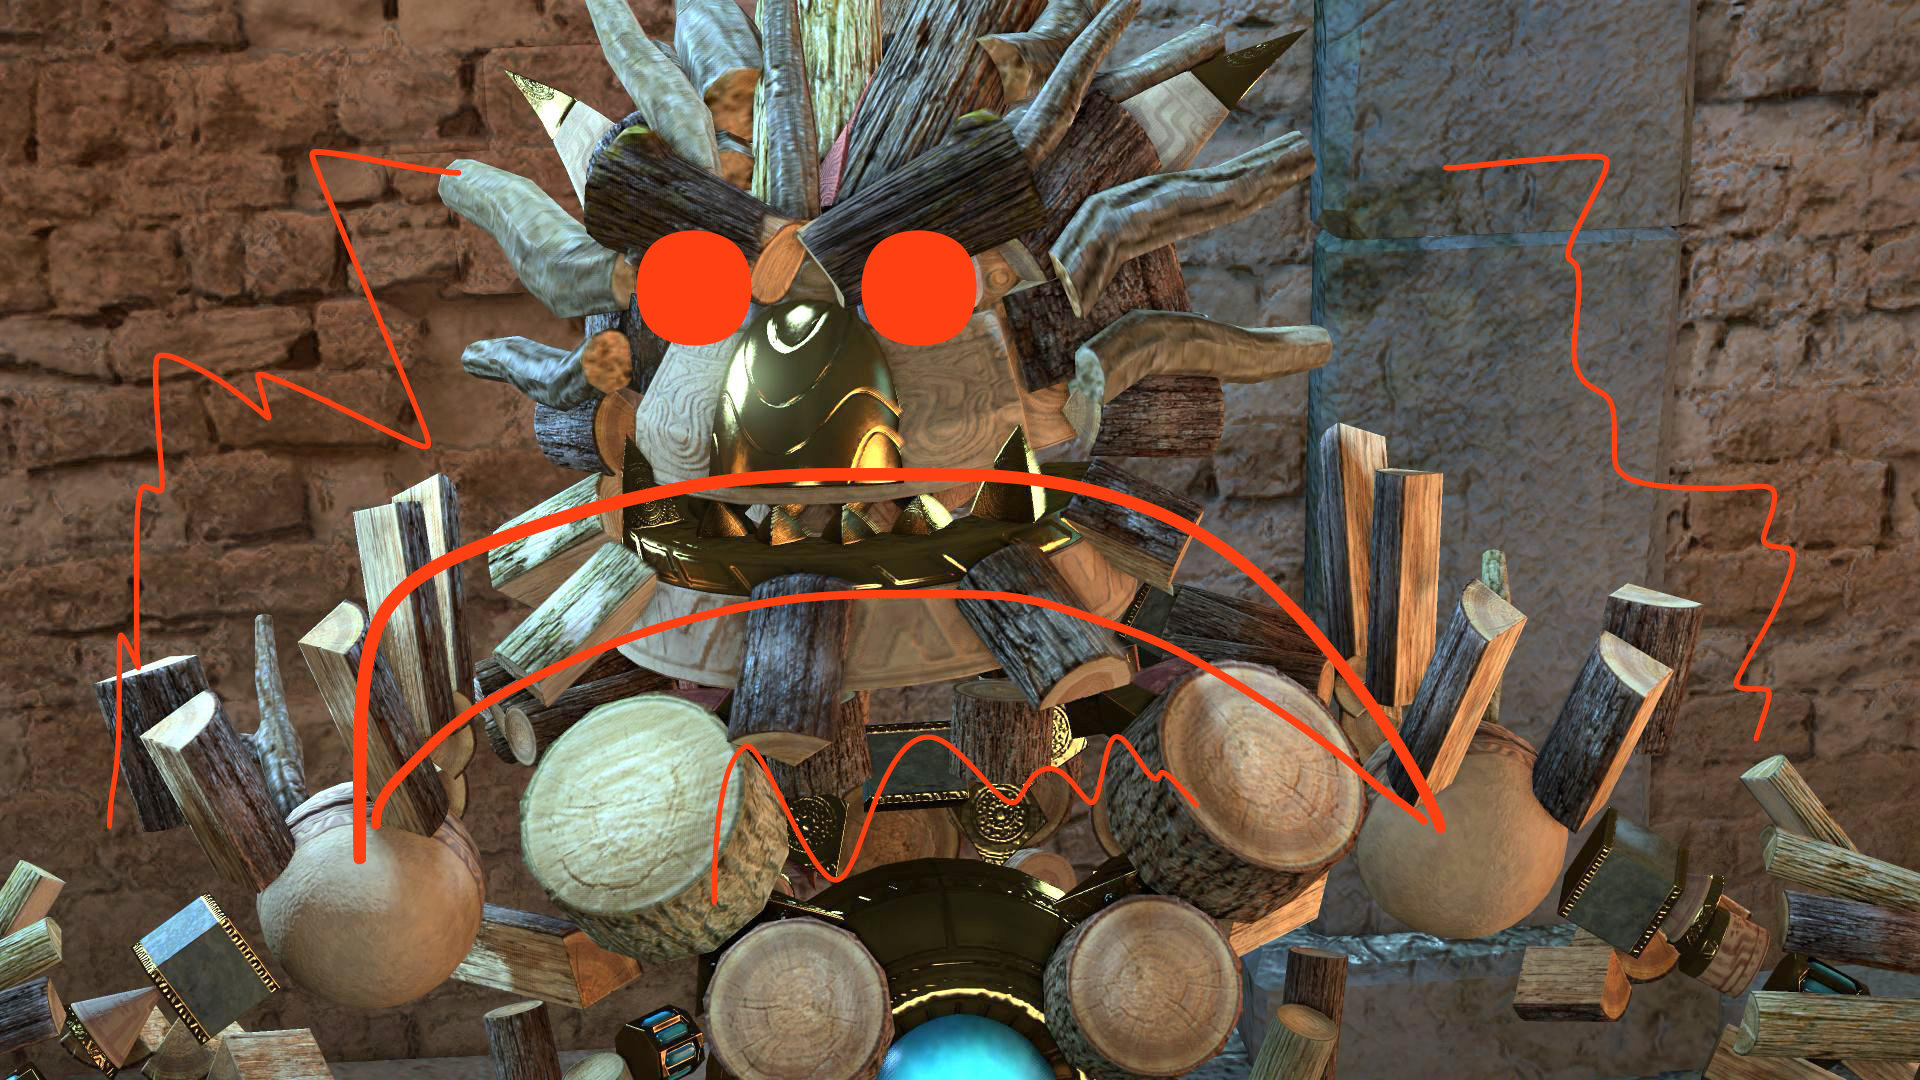 Accurate representation of both mine and Knack's feelings.